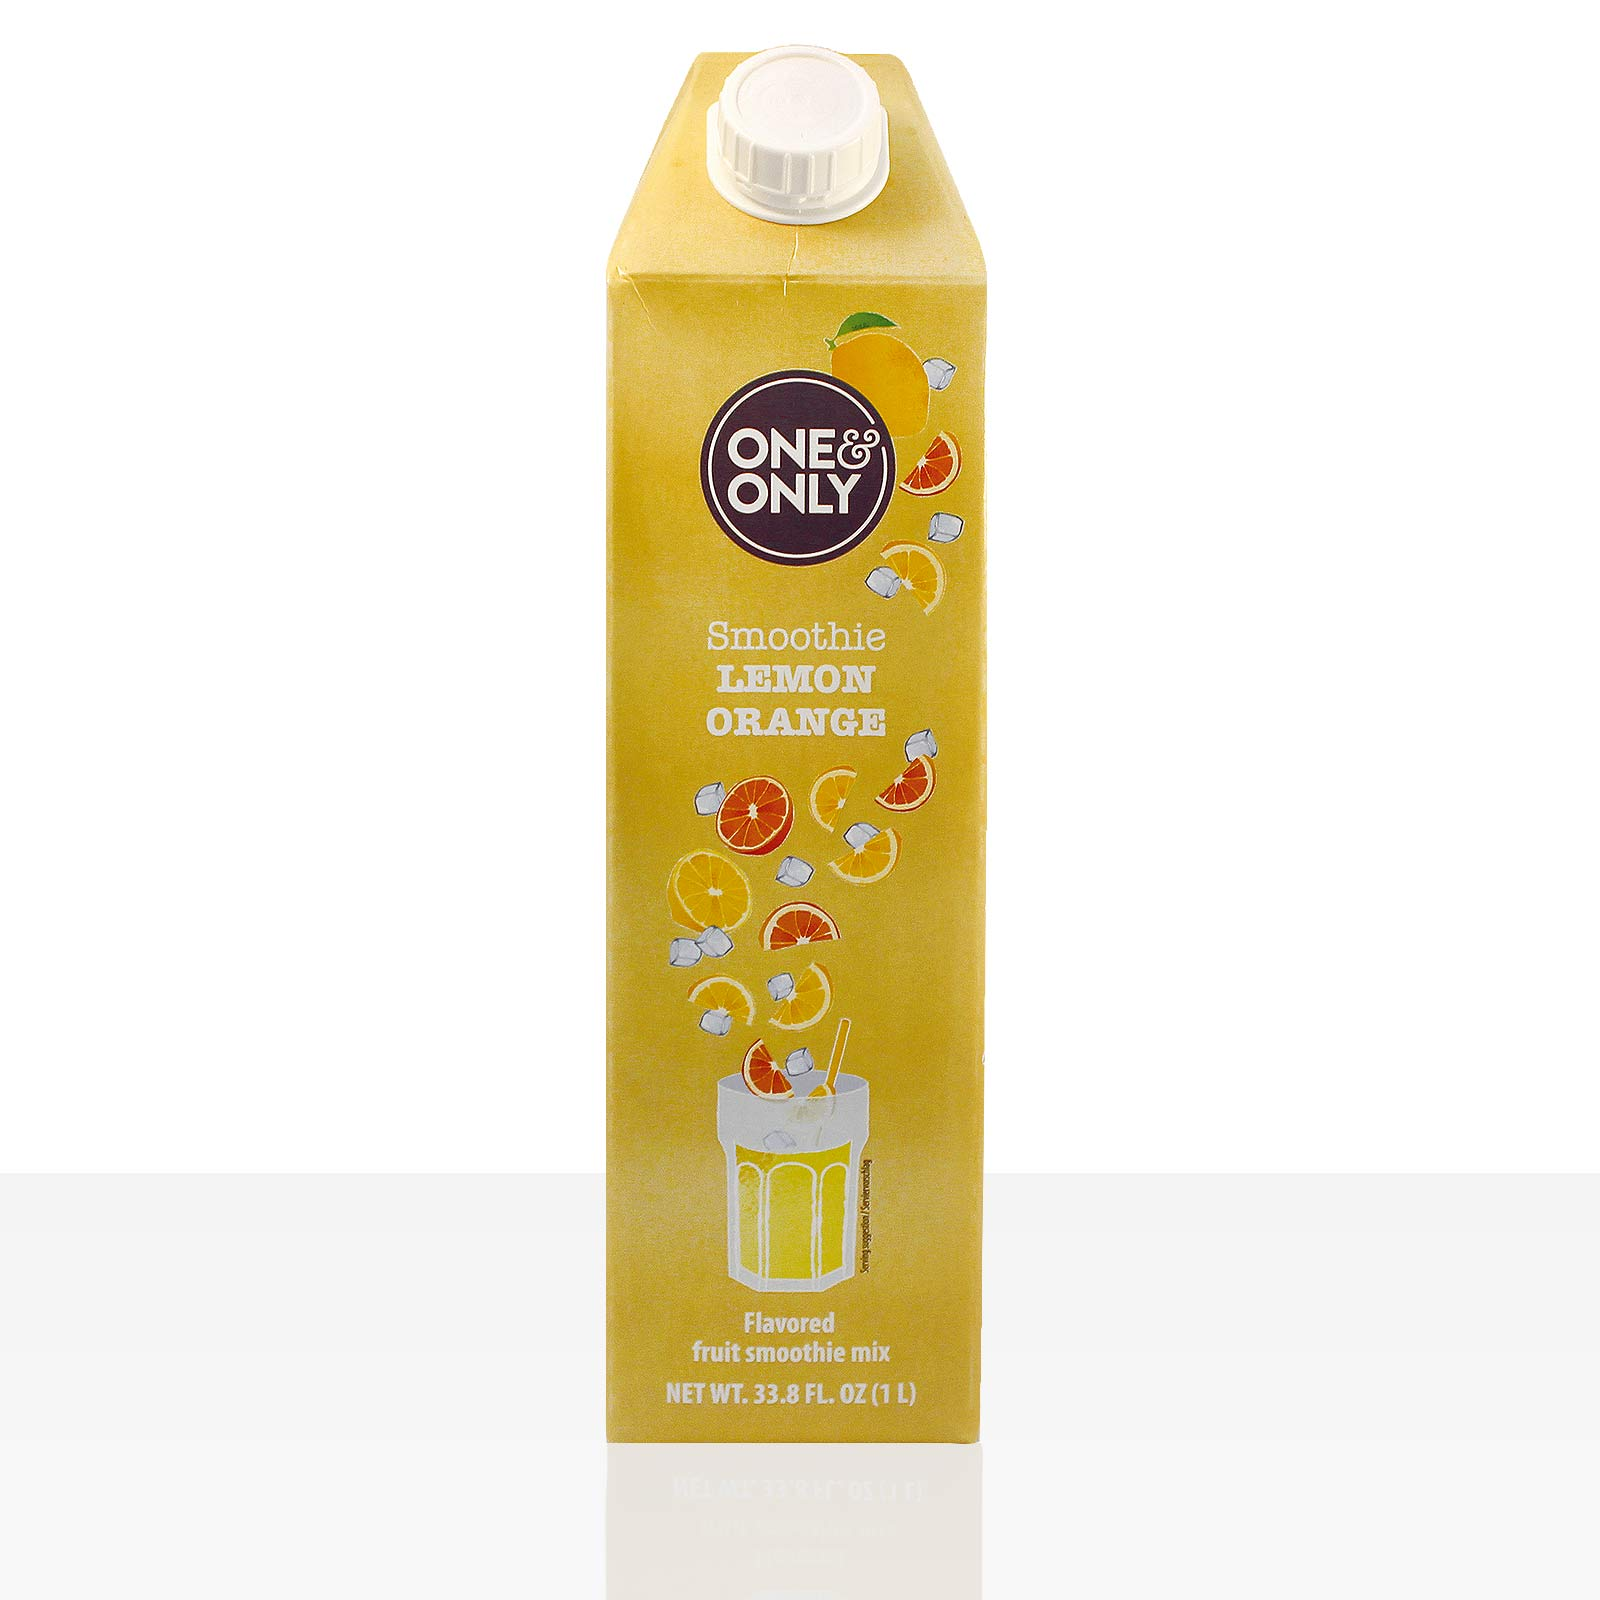 One & Only Smoothie Orange Lemon 6 x 1l